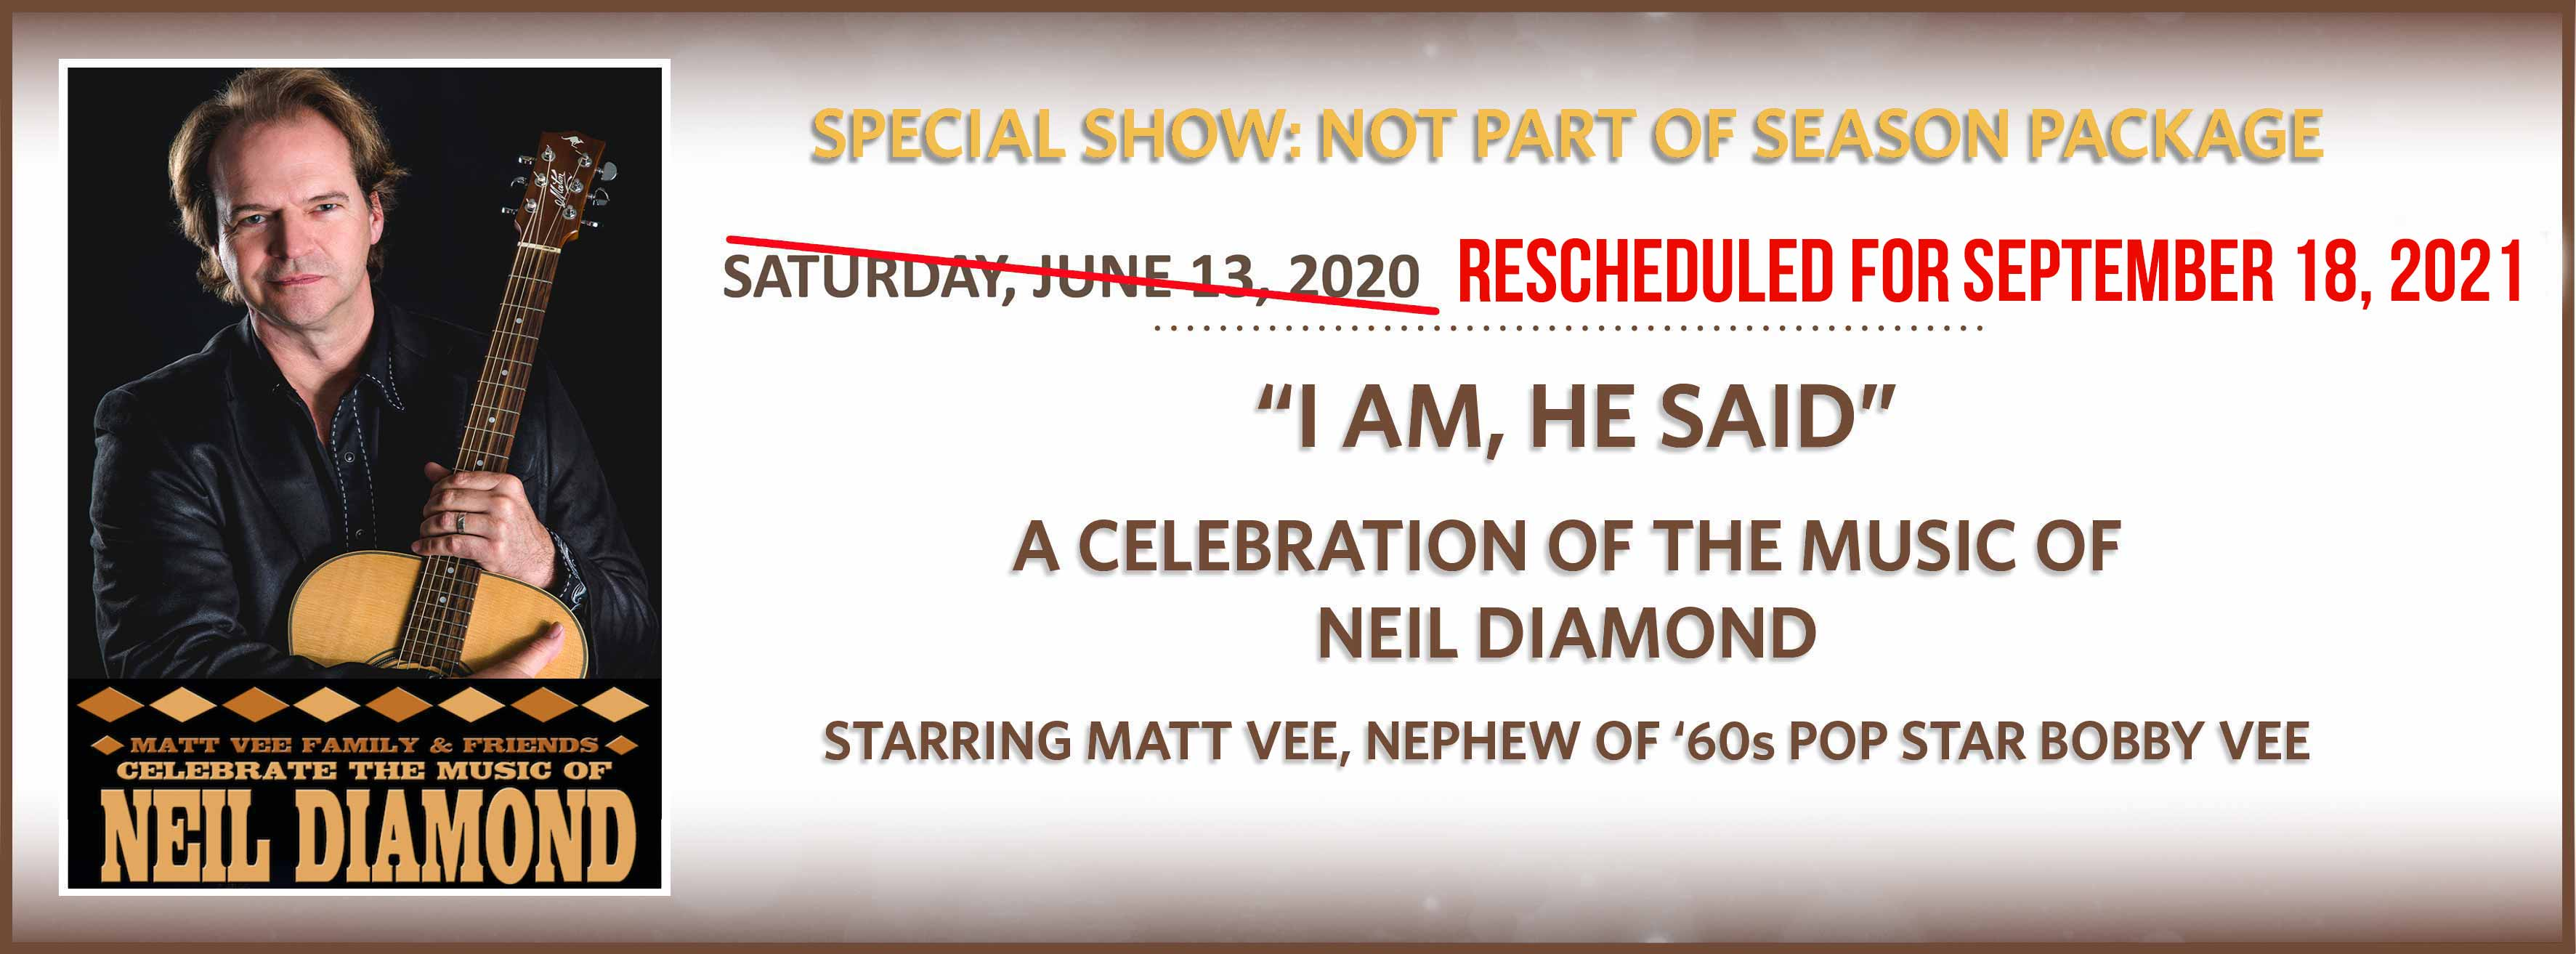 A Celebration of the Music of<br/> Neil Diamond: Saturday, April 4, 2020